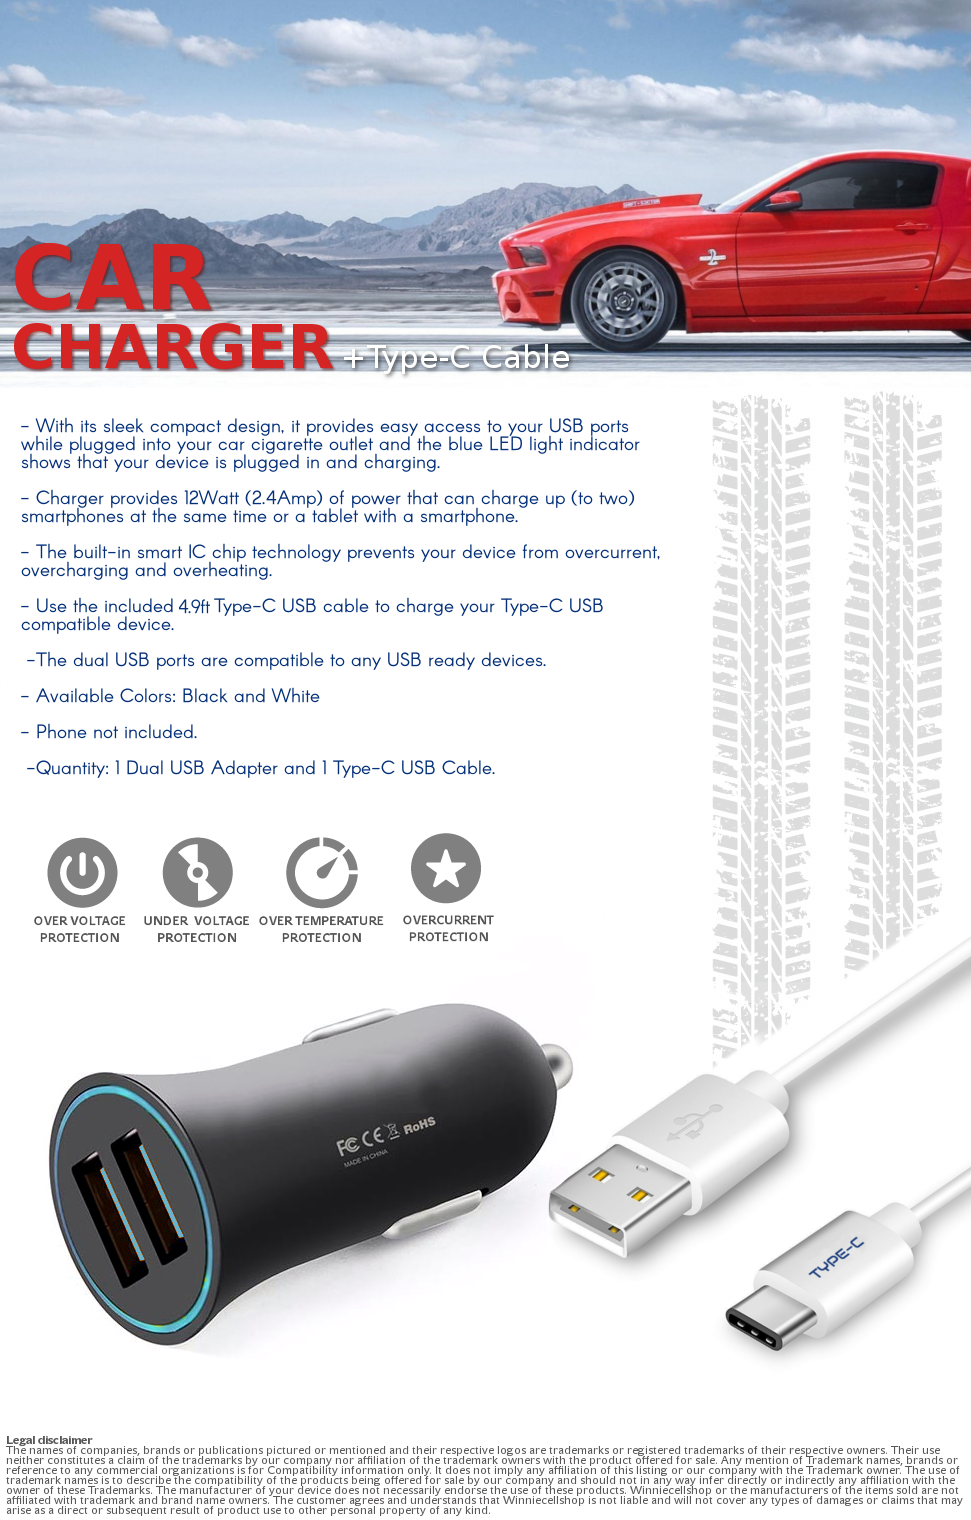 Rapid Charge 2 Port Usb Plug In Car Adapter Type C Charger Cable Fastchargerwithcutoffcircuitpng Categories